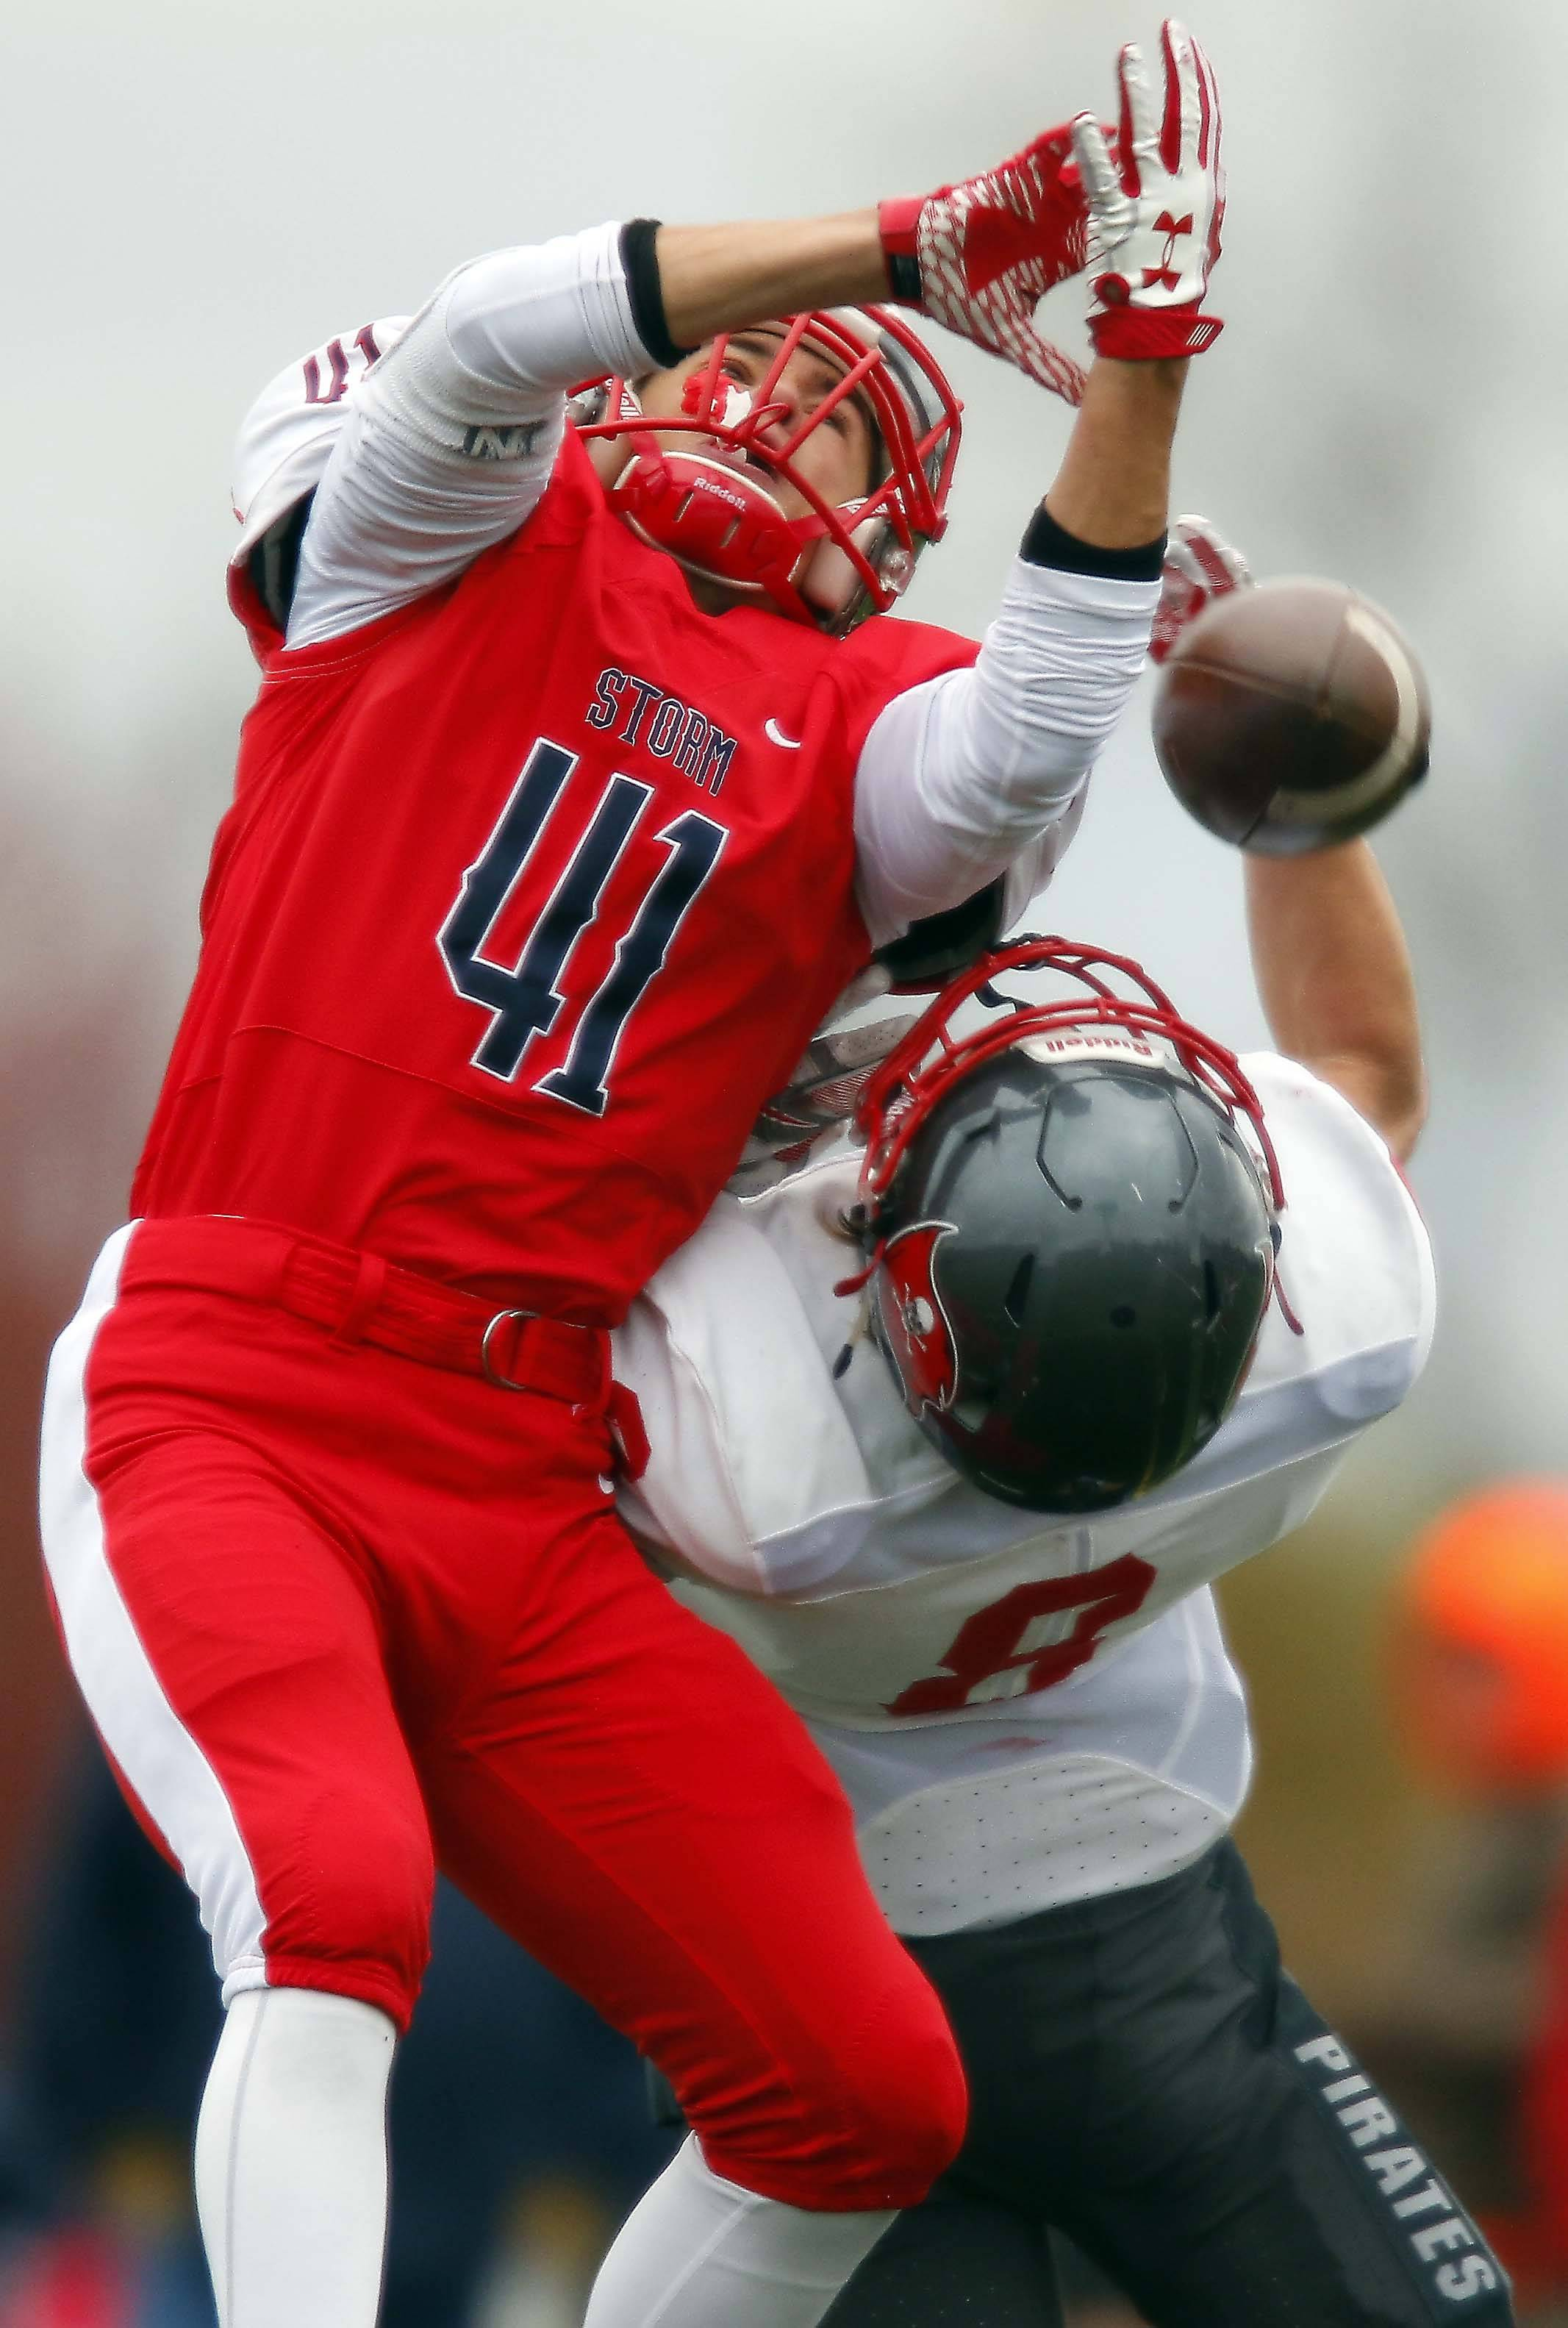 Palatine's Luis Bueso (41) and South Elgin's Nate Gomez (8) can't come down with the ball Saturday during Palatine vs. South Elgin Class 8A football playoffs at Millennium Field in Streamwood.